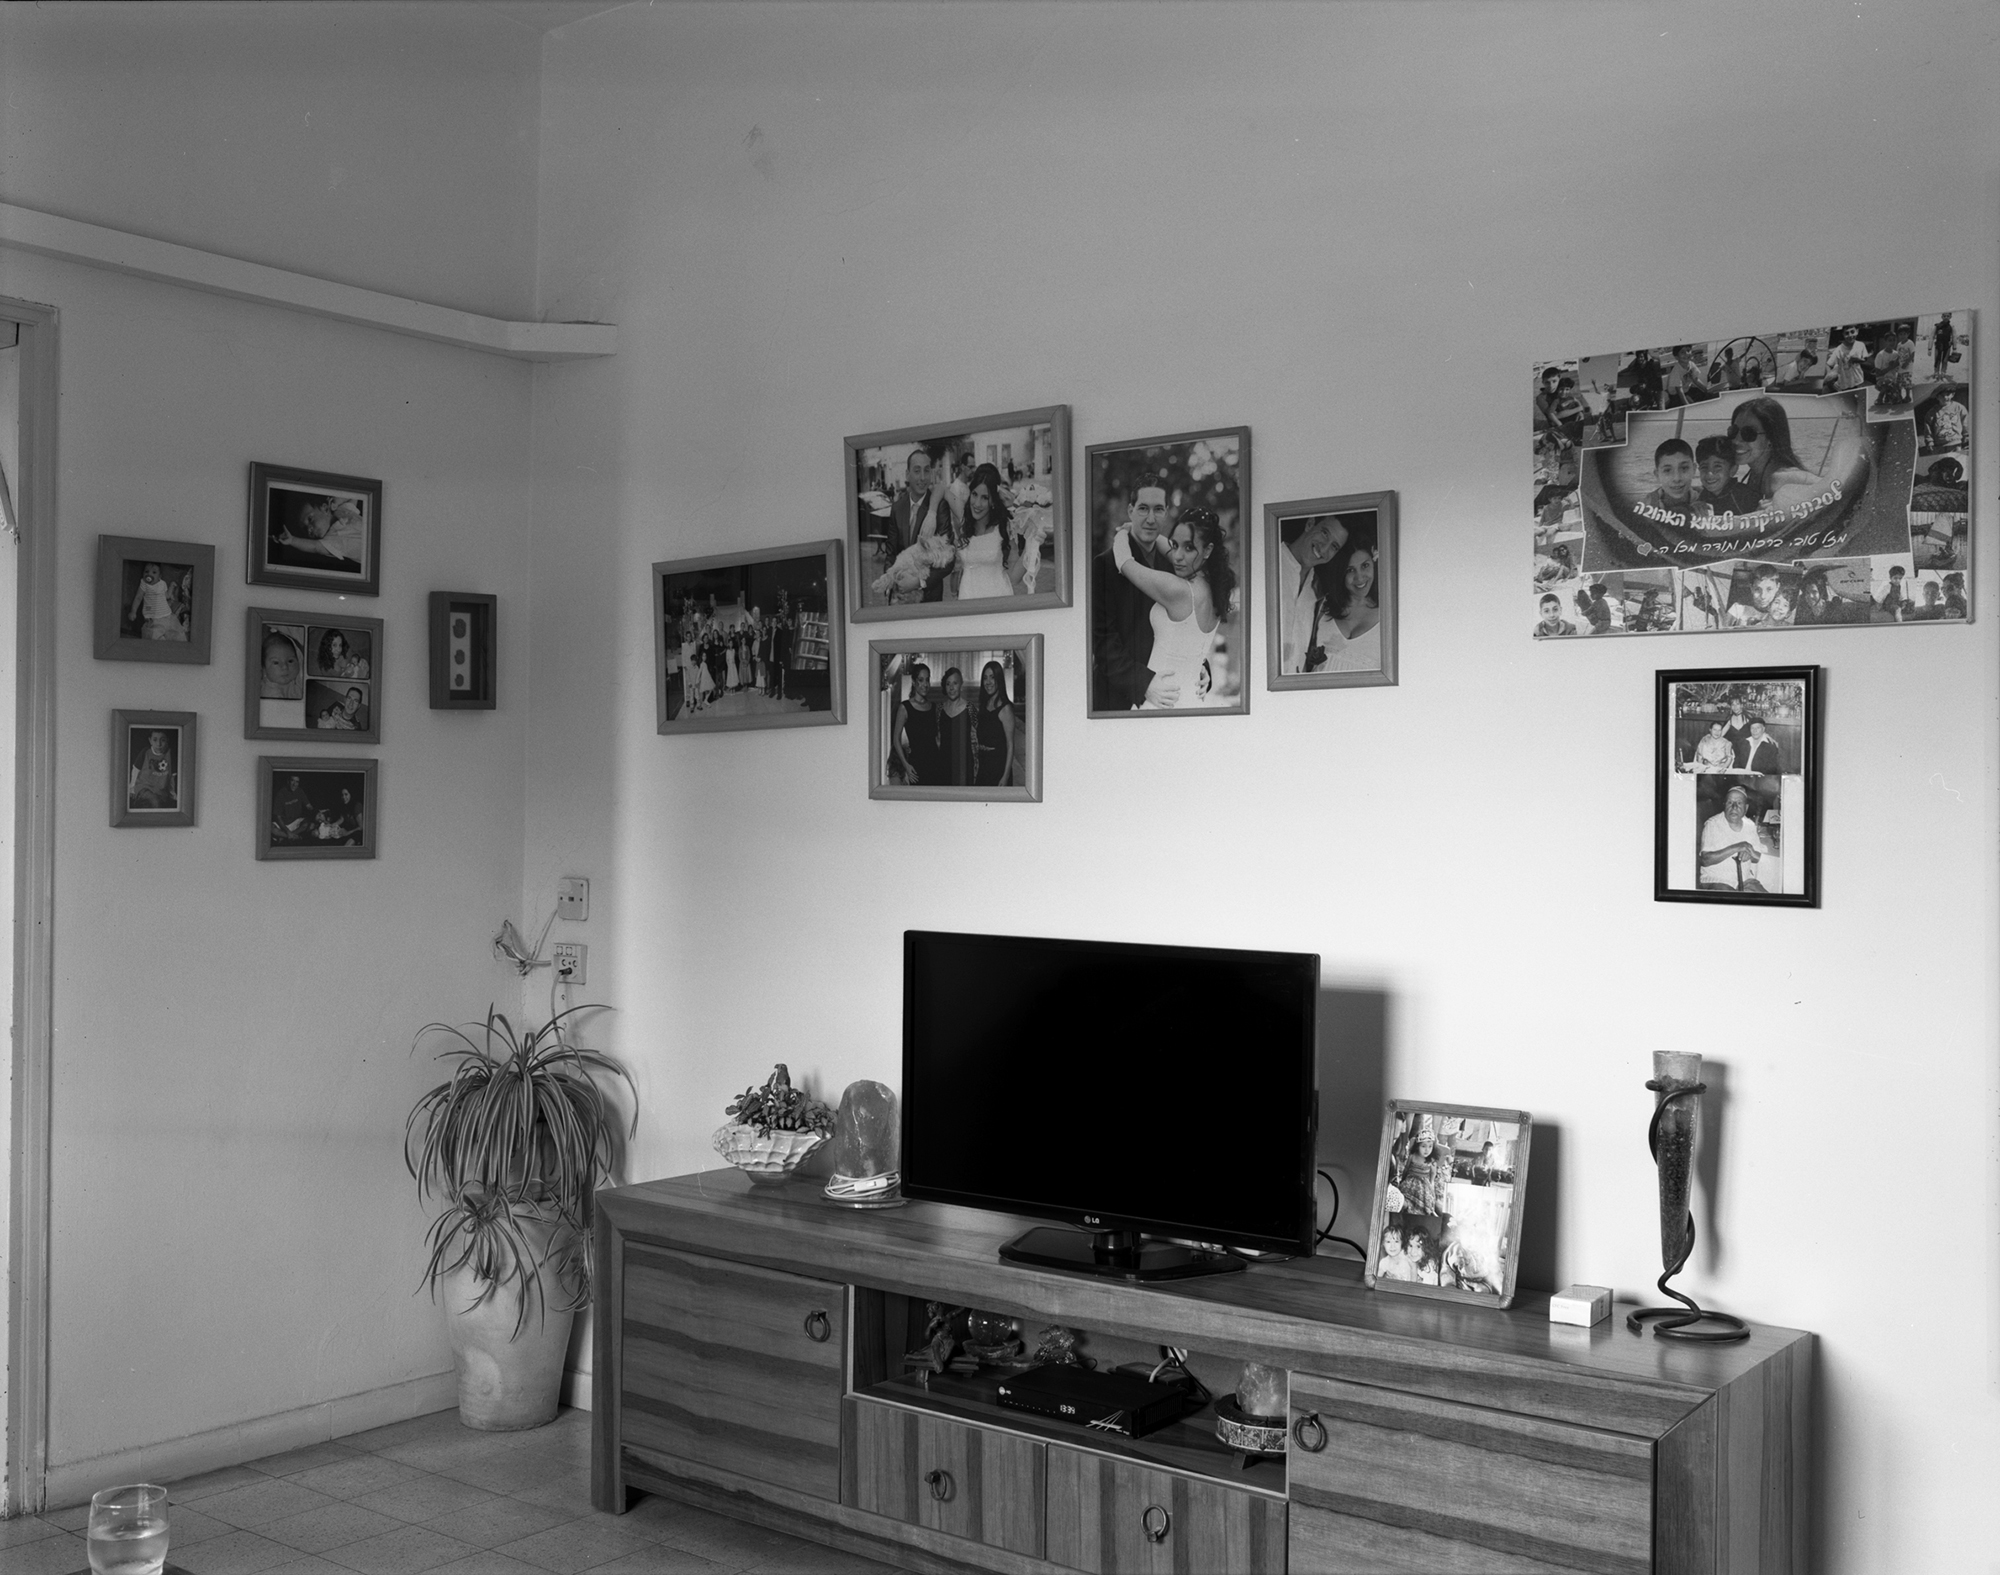 G. living room, Neve Sha'anan 2015